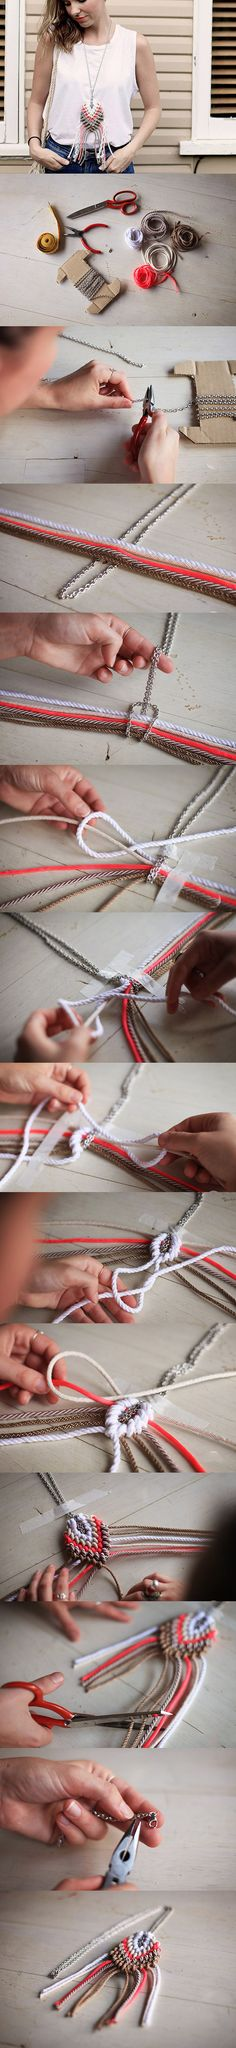 DIY: Jewelry Chains Cool Ideas smaller scale, beads on tassles. Diy Jewellery Chain, Macrame Jewelry, Jewelry Making, Macrame Necklace, Diy Collier, Do It Yourself Jewelry, Ideias Diy, Macrame Tutorial, Diy Schmuck